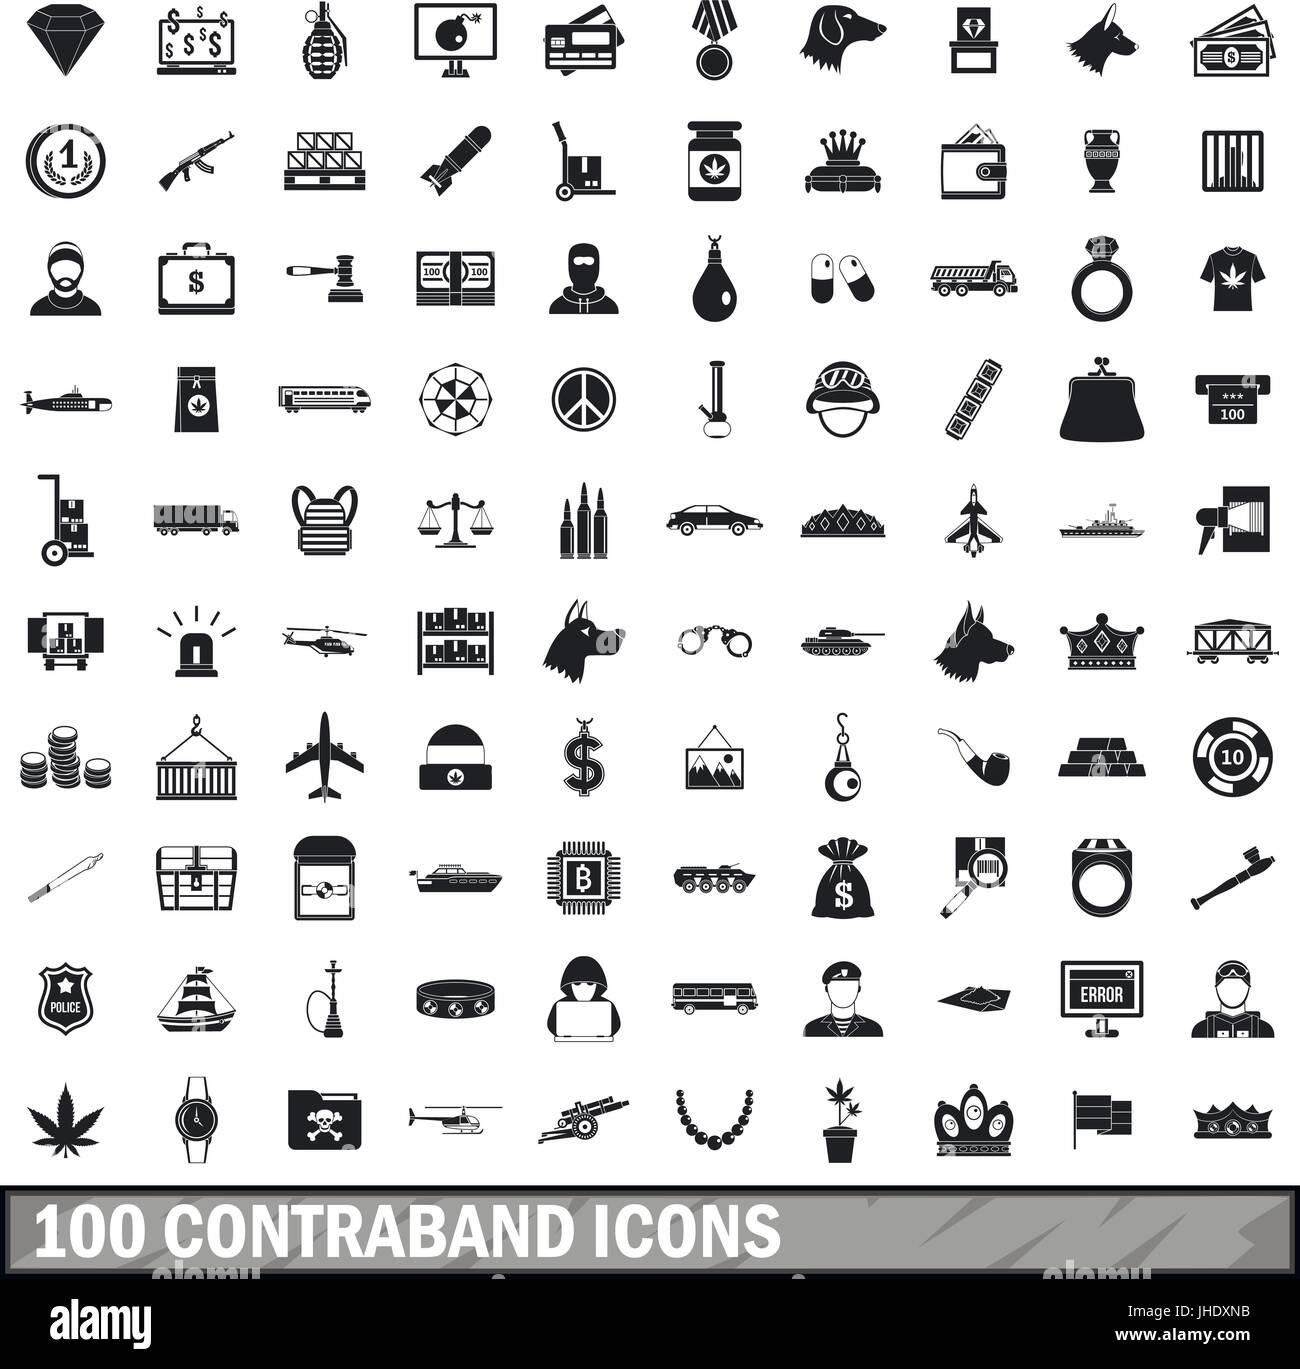 100 contraband icons set, simple style  - Stock Image